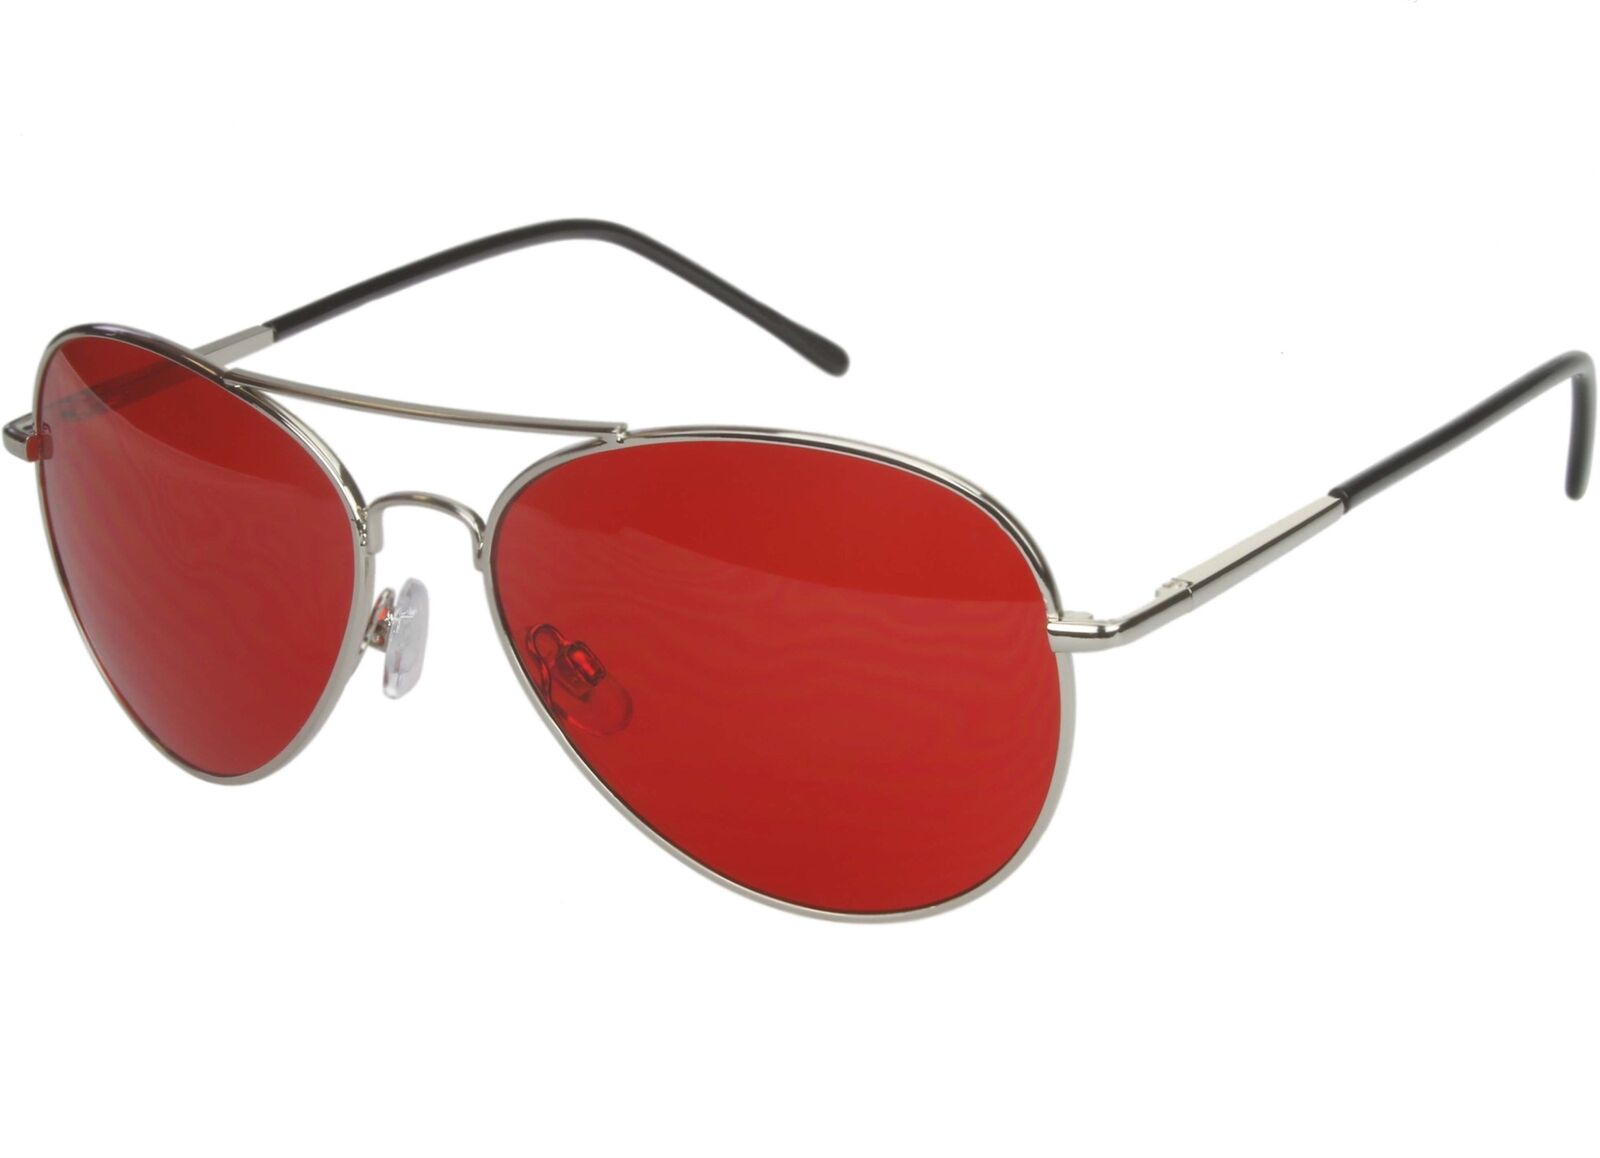 5f8ce4bf488d Details about 70 s Glasses Red Tint Lens Aviator Sunglasses Pilot Classic  Silver Metal Frame